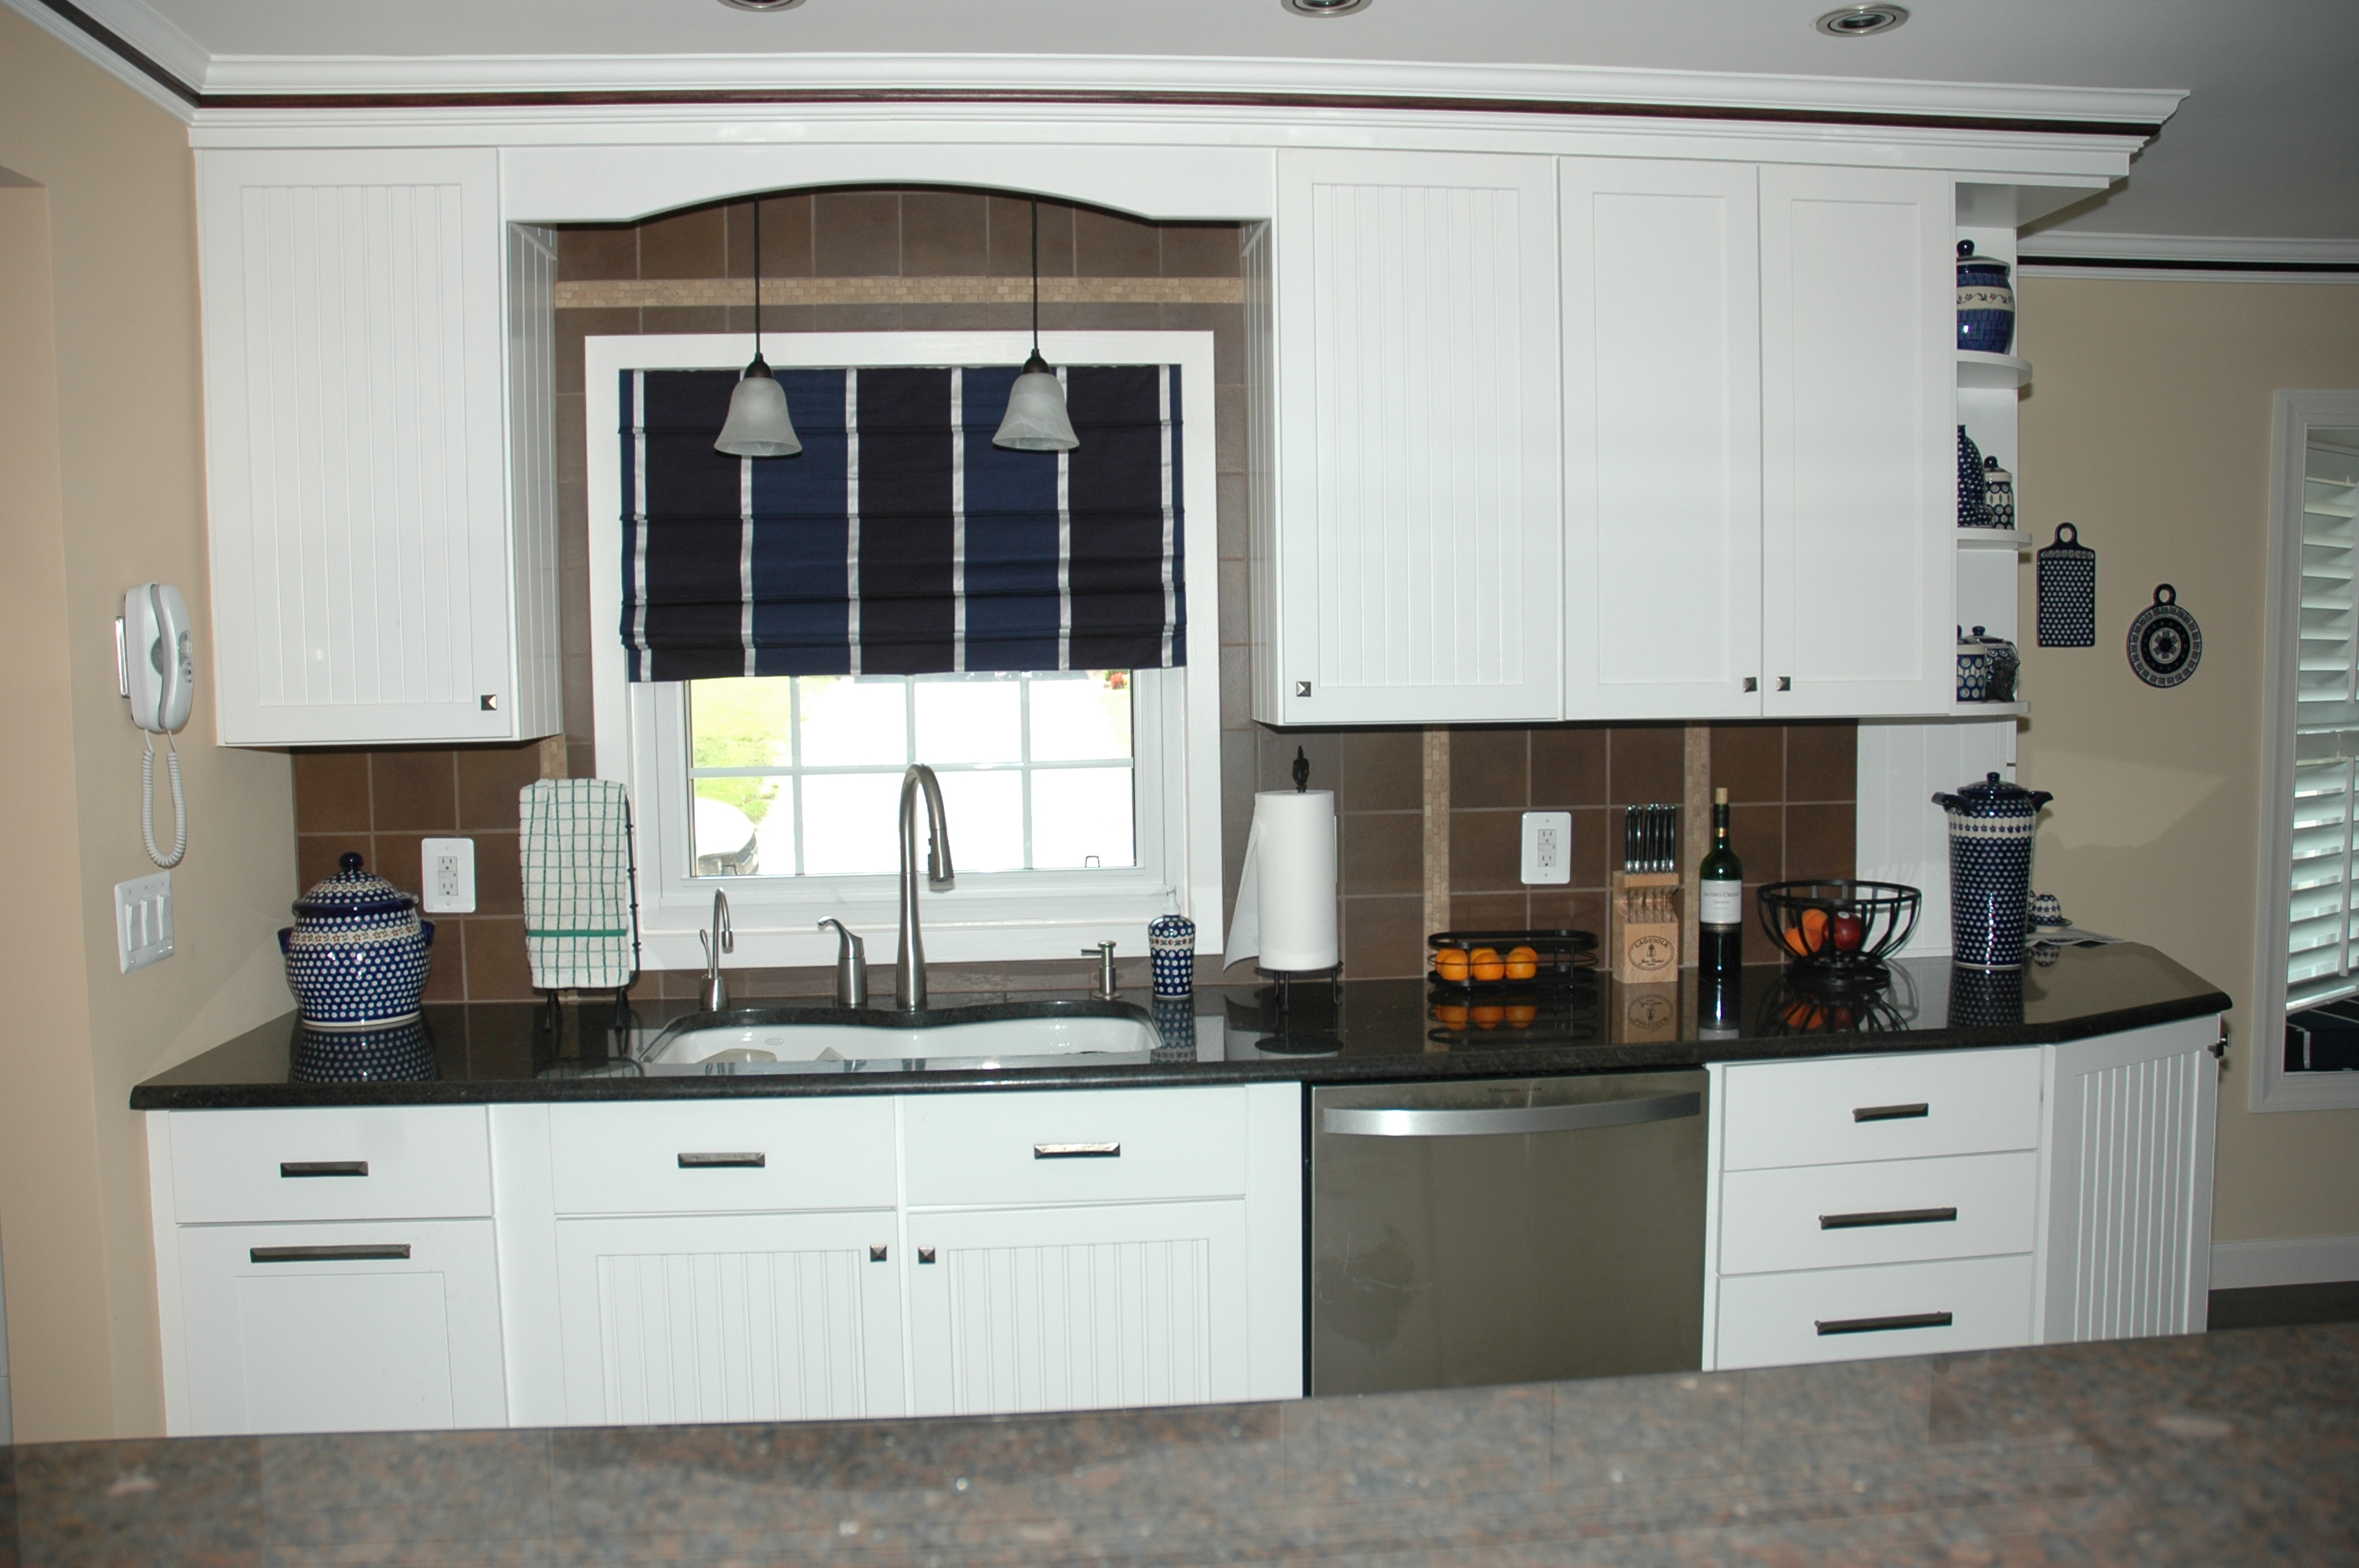 Astonishing Design Search Results Kitchen Space - Kitchen remodeling northern virginia